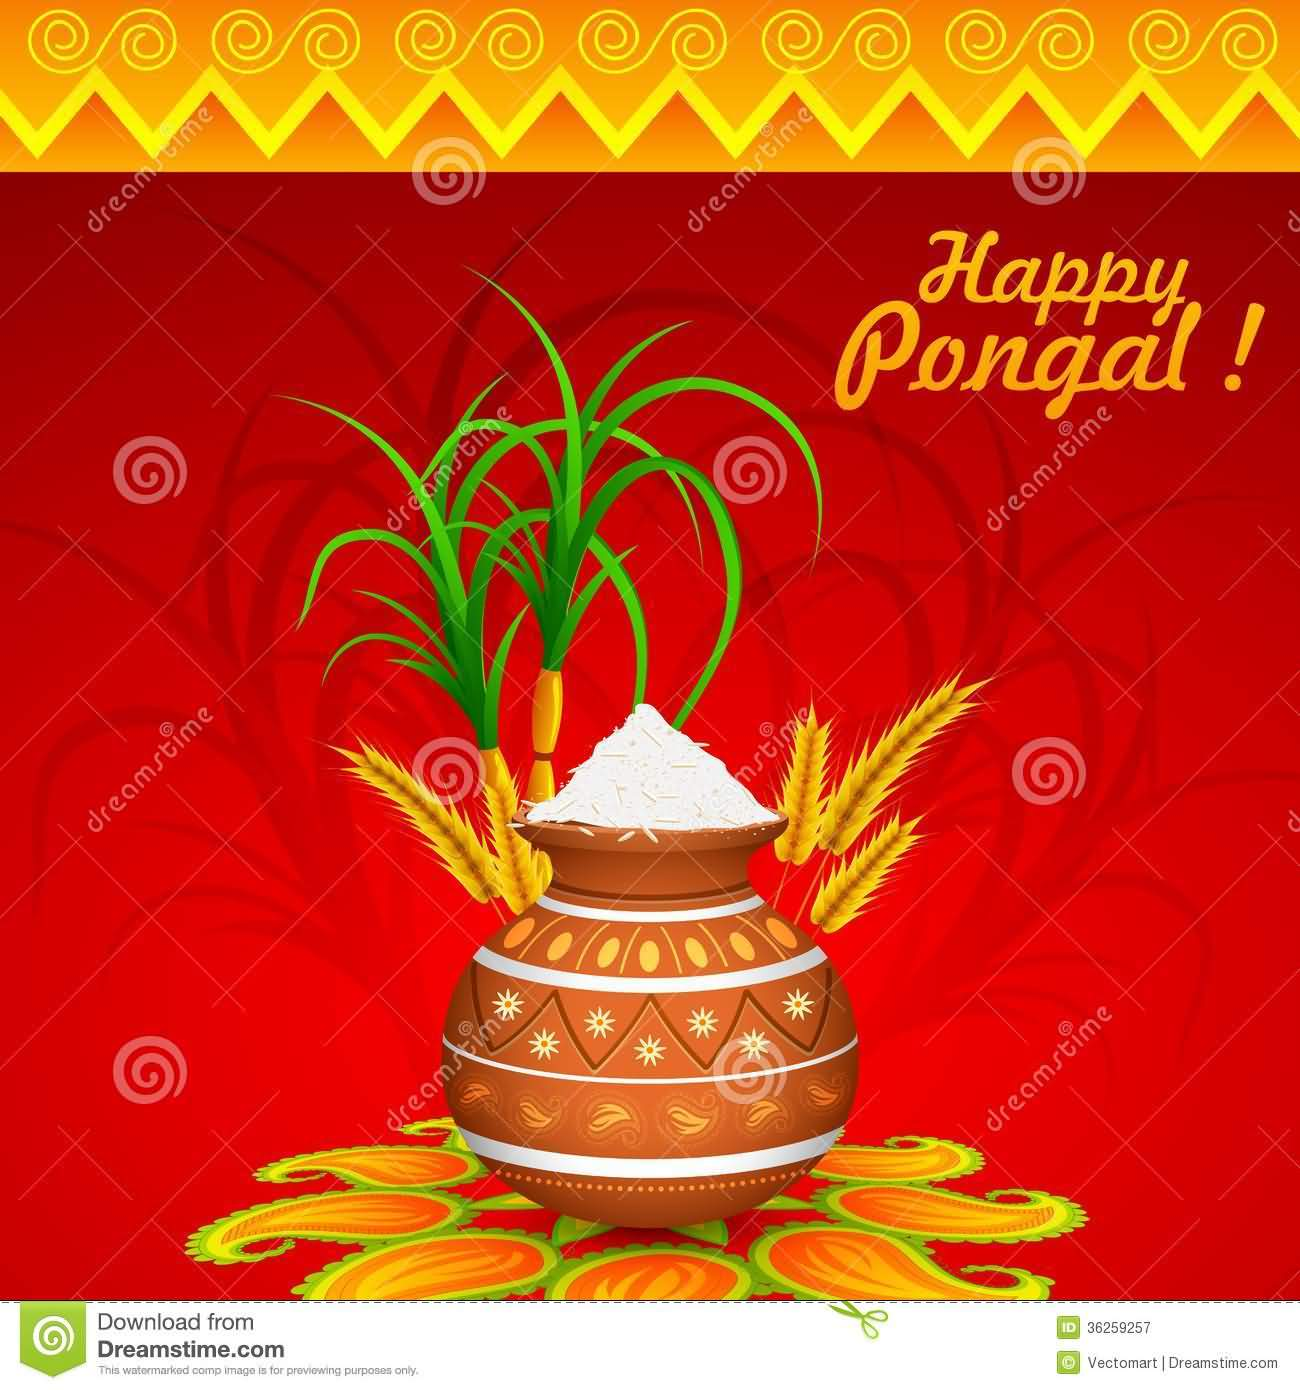 6-Happy Pongal Wishes